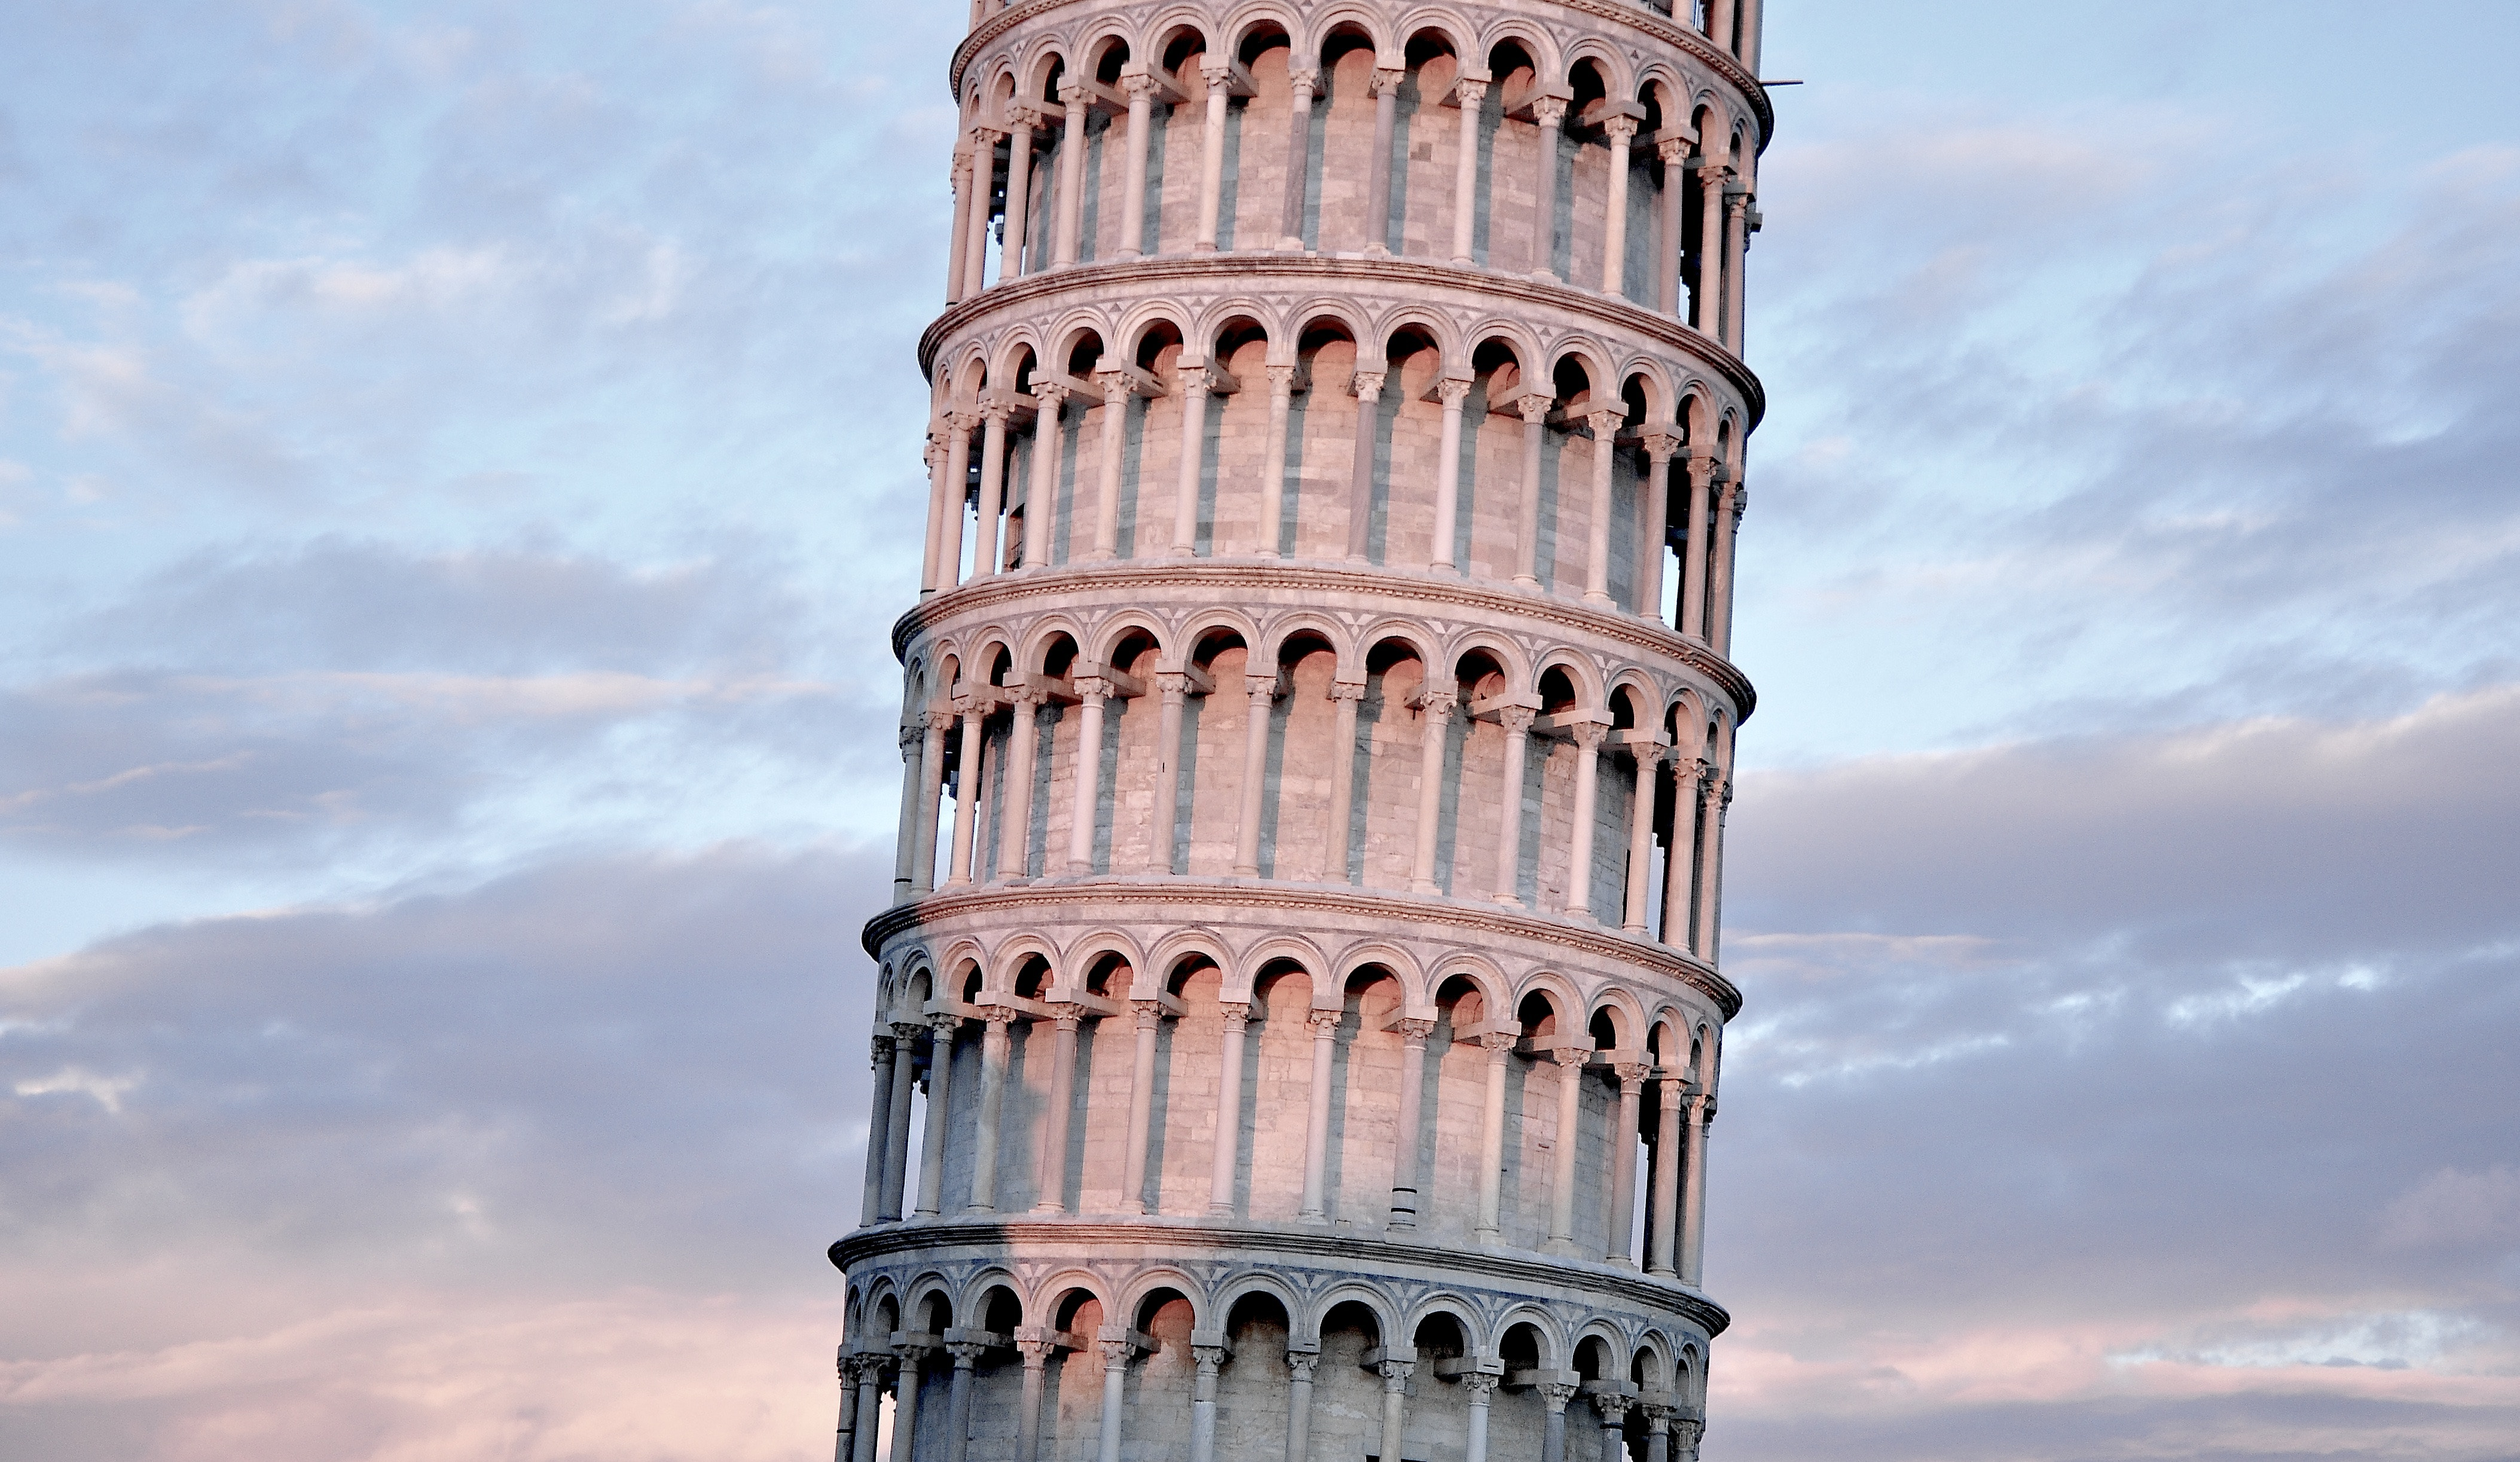 The leaning tower of Pisa is one of the most famous places in Italy. Can you guess the others